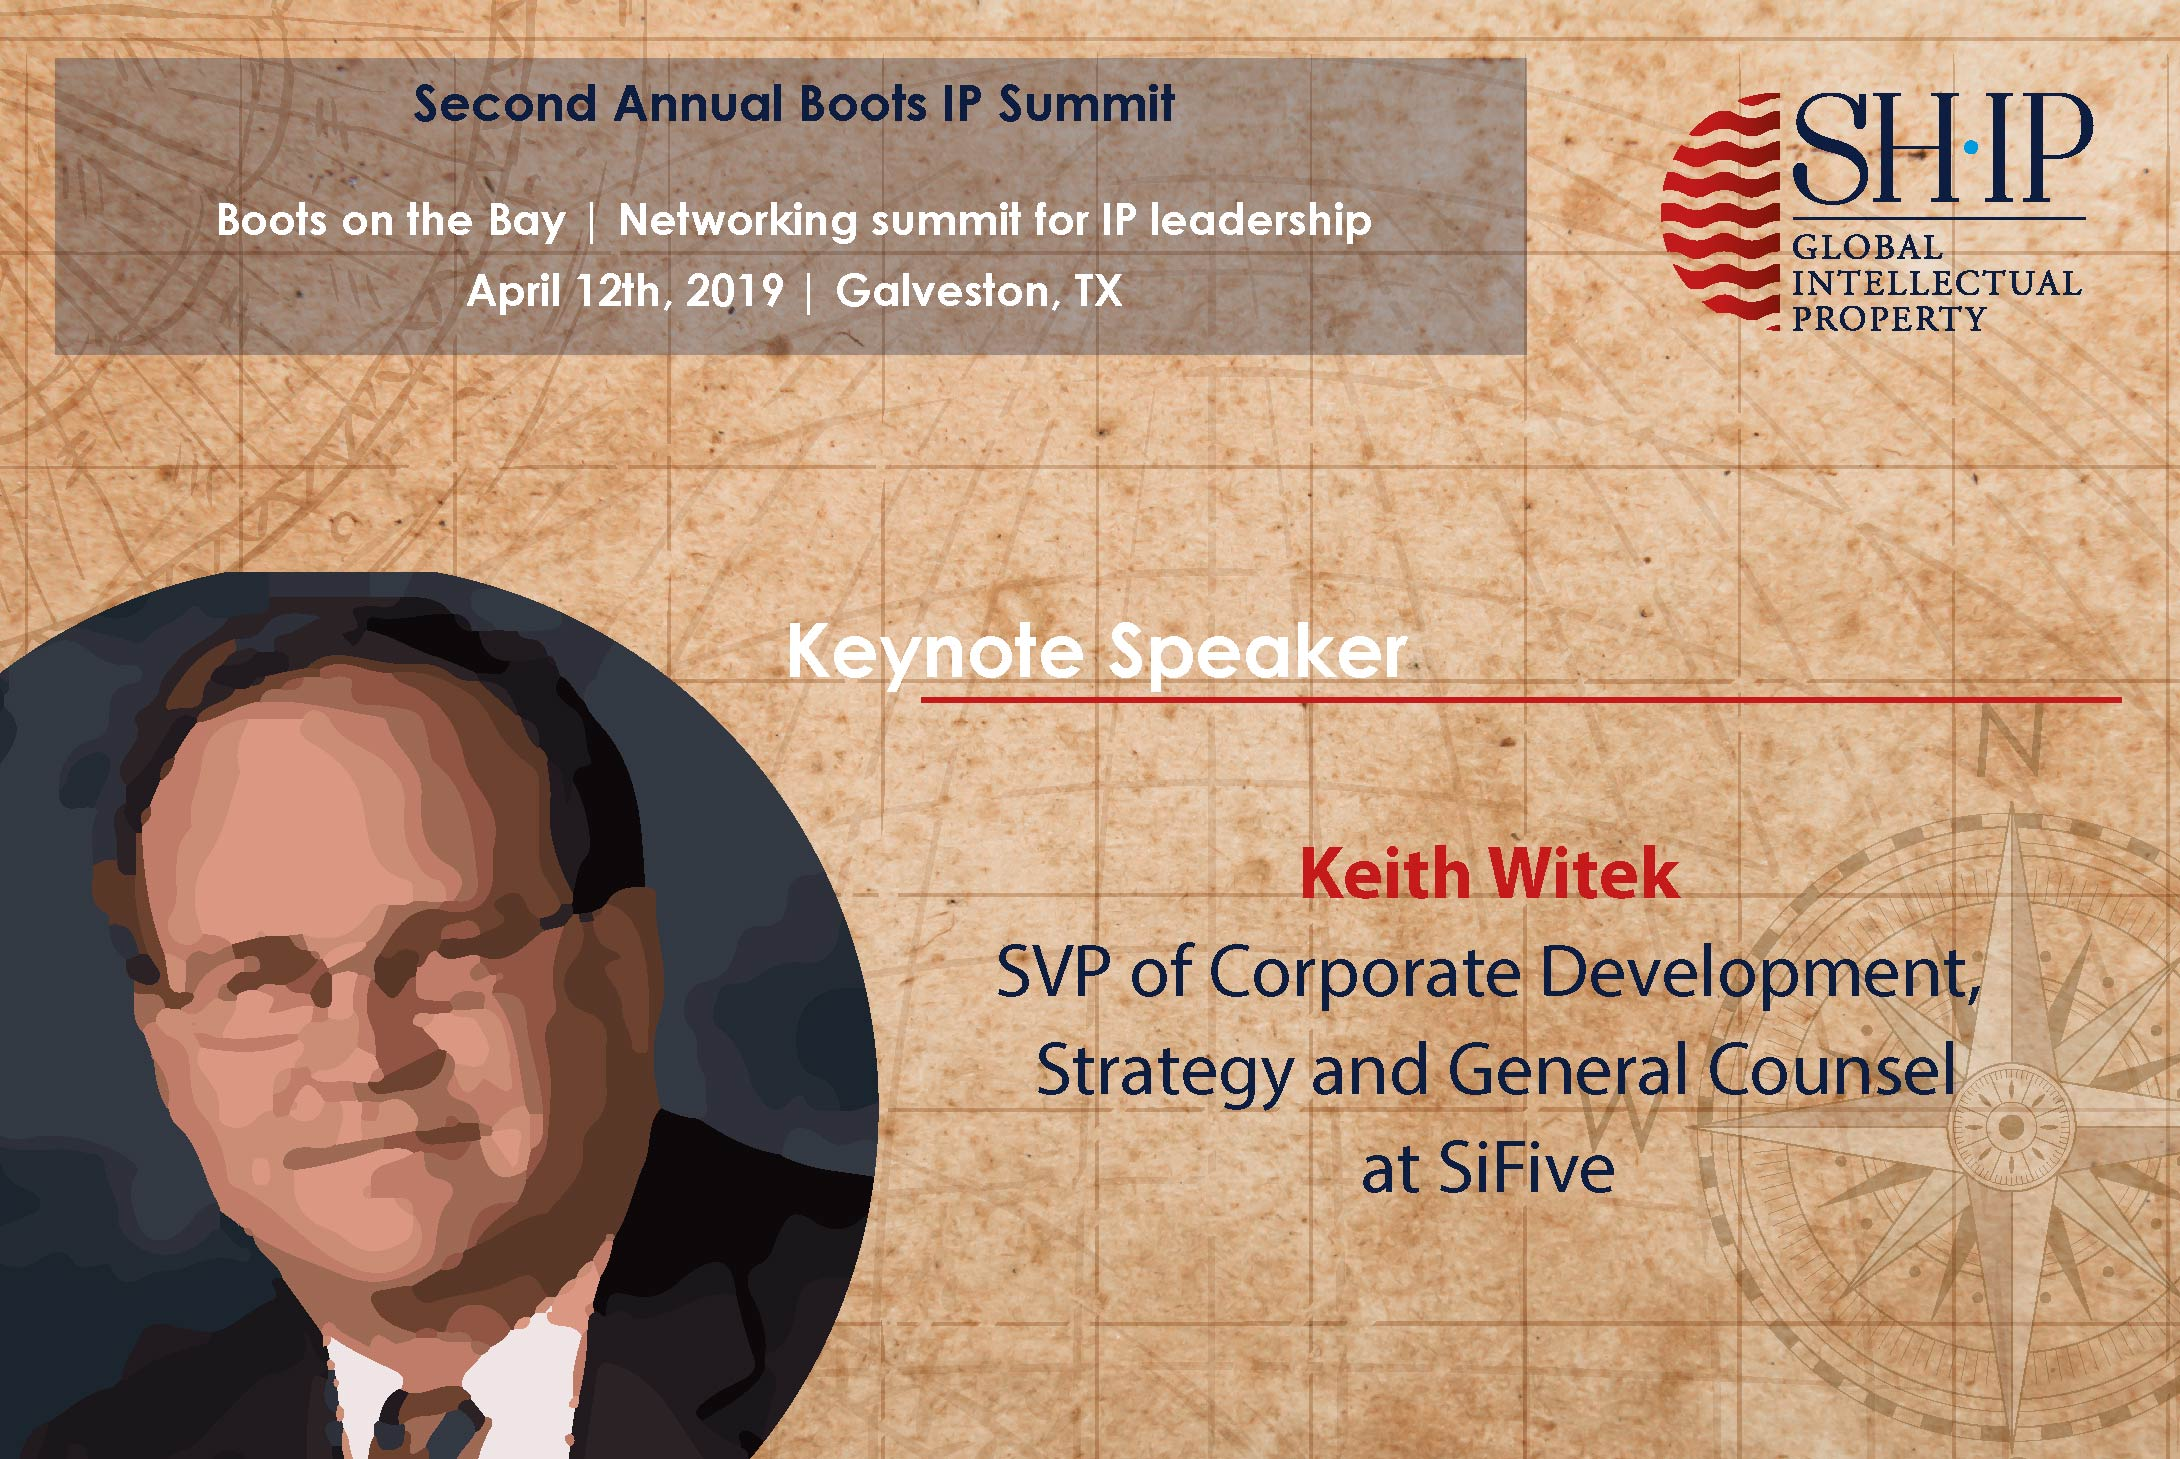 Second Keynote Speaker at Boots on the Bay IP Summit announced!